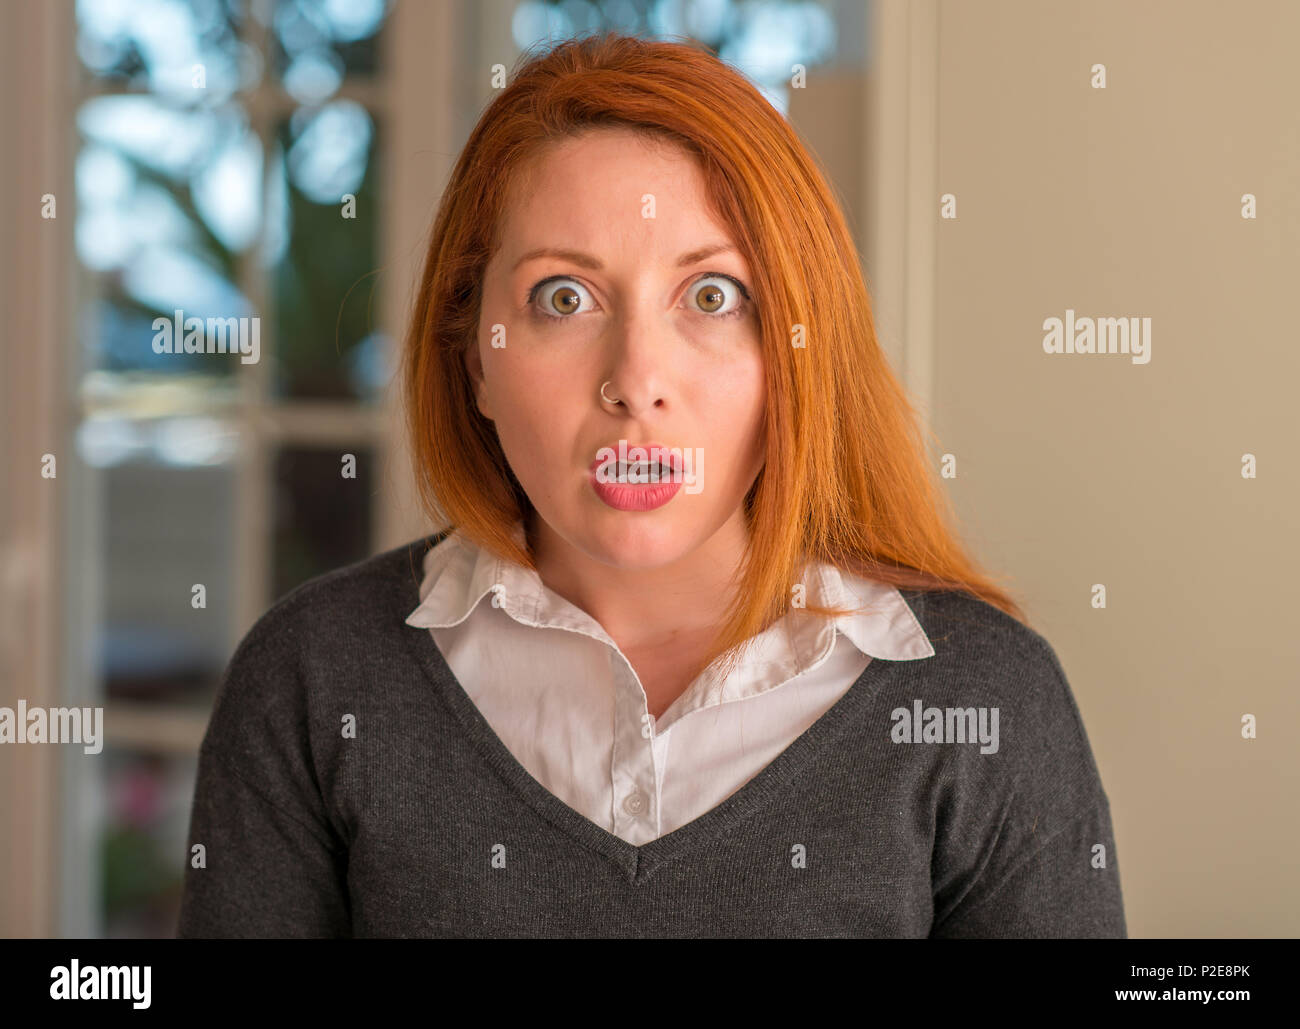 Redhead woman at home scared in shock with a surprise face, afraid and excited with fear expression Stock Photo